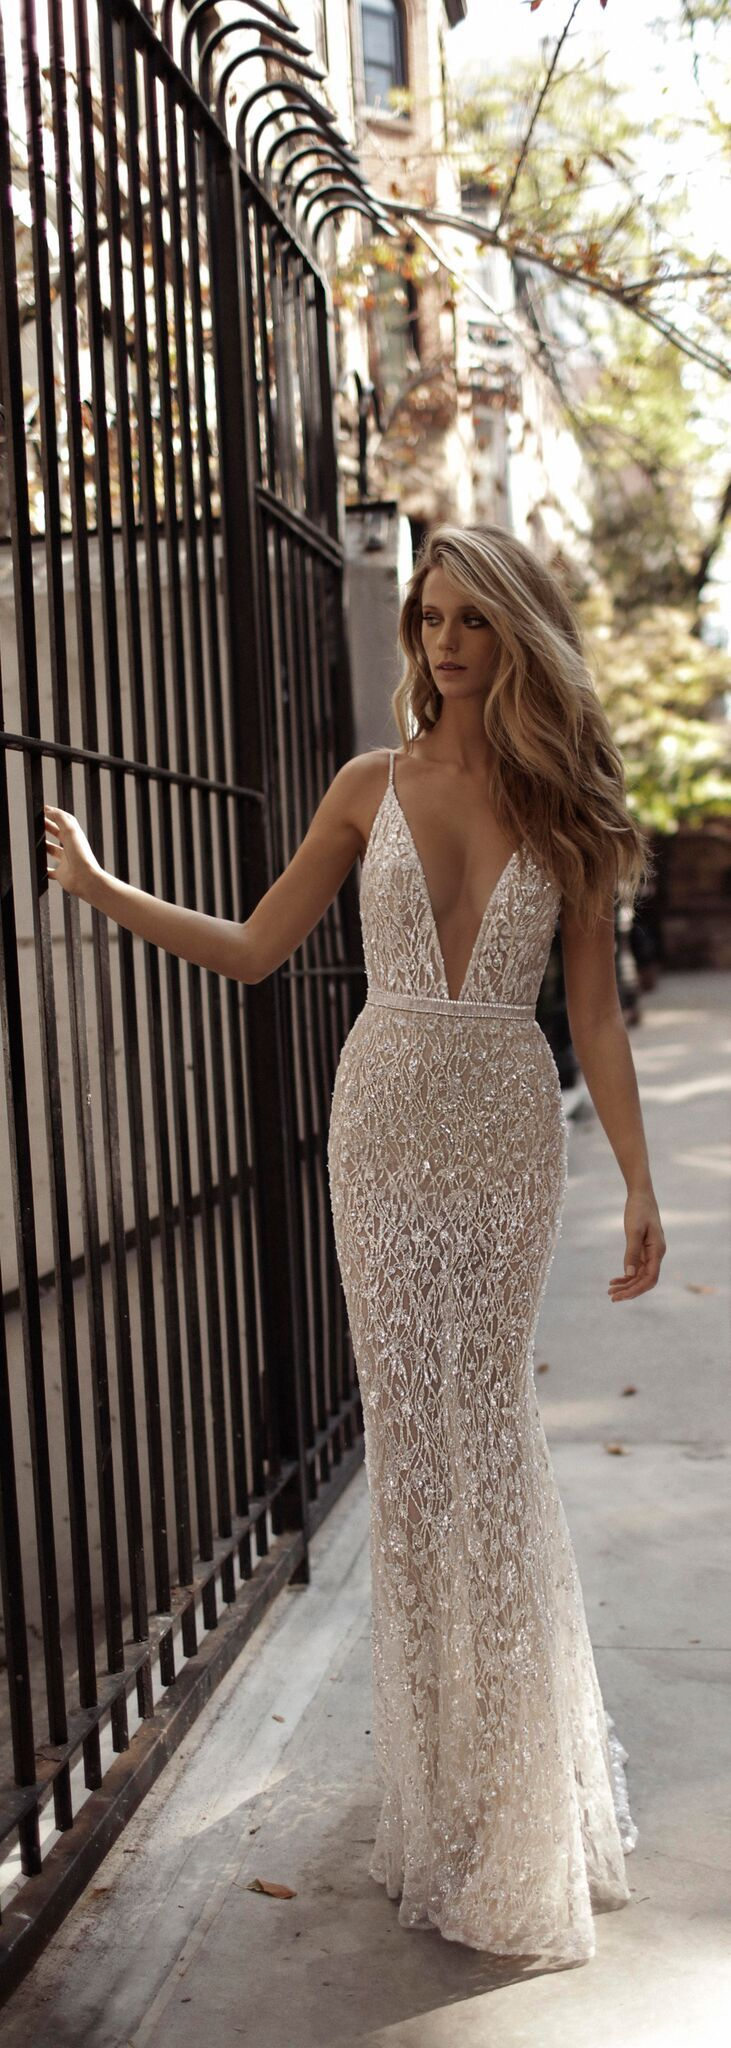 Best 25 sexy wedding dresses ideas on pinterest sexy wedding this bertabridal wedding dress is pretty meets sexy and we love it ombrellifo Image collections